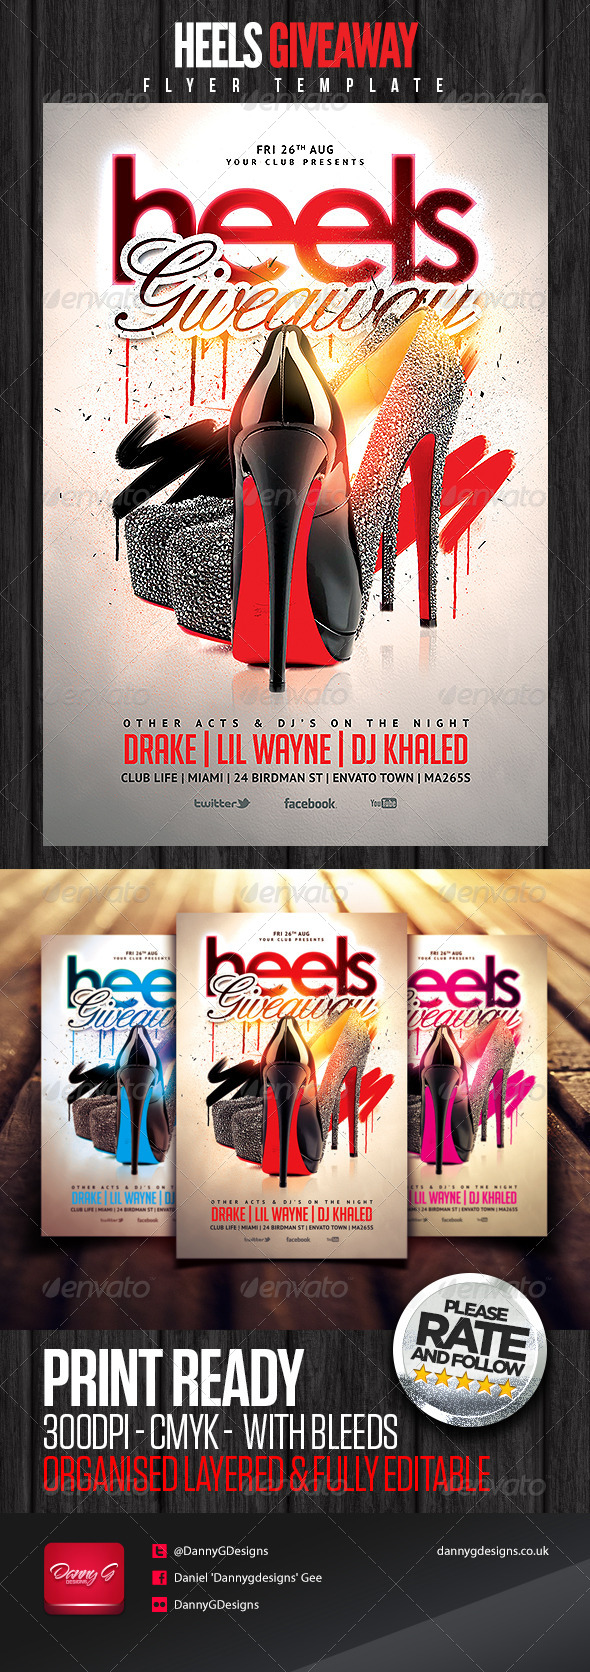 heels giveaway flyer template by dannygdesigns graphicriver